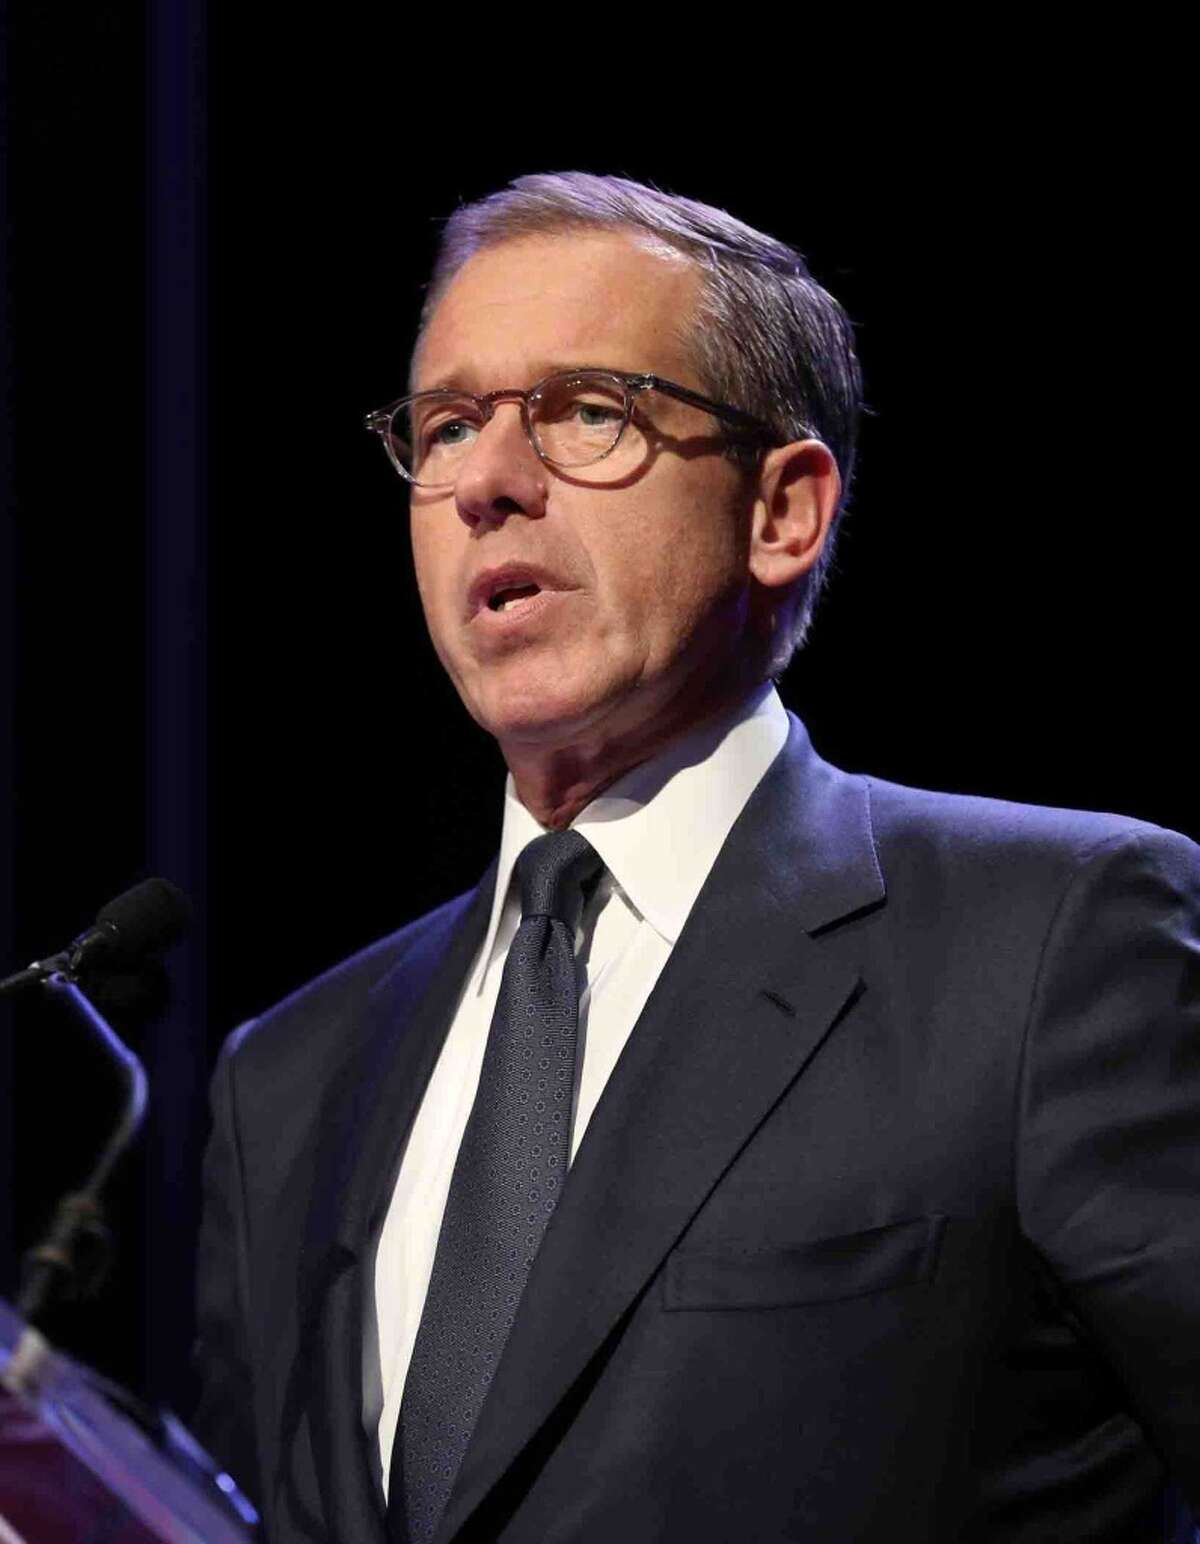 FILE - FEBRUARY 7, 2015: Brian Williams. (Photo by Neilson Barnard/Getty Images)